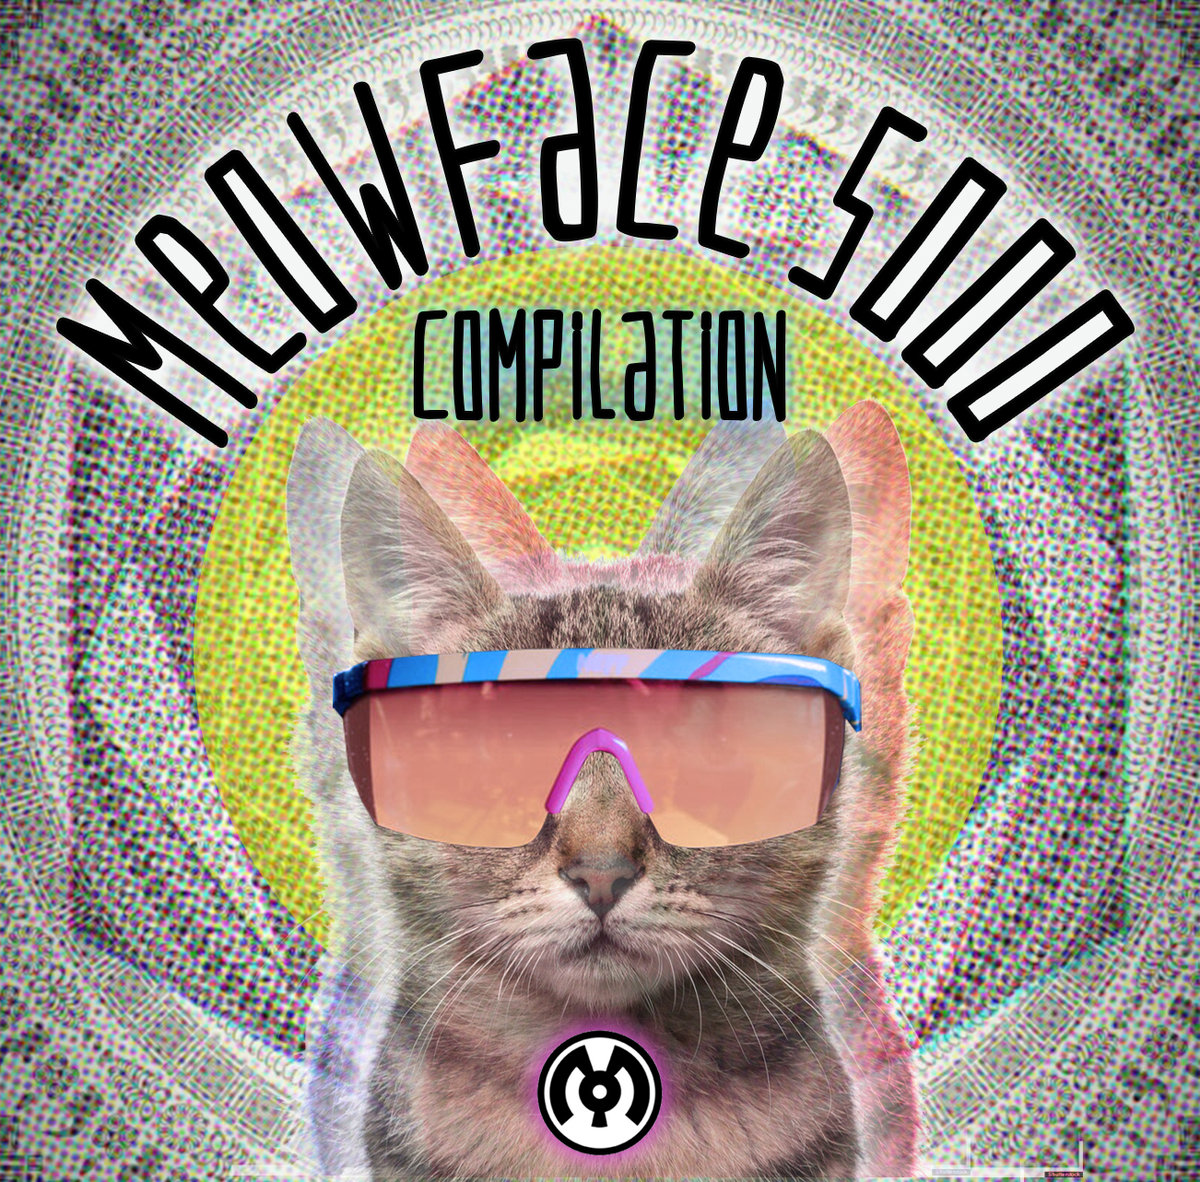 El Diablo feat. Colonel-MC - Godzilla is my Soundbwoy @ 'MeowFace 5000' album (electronic, dubstep)